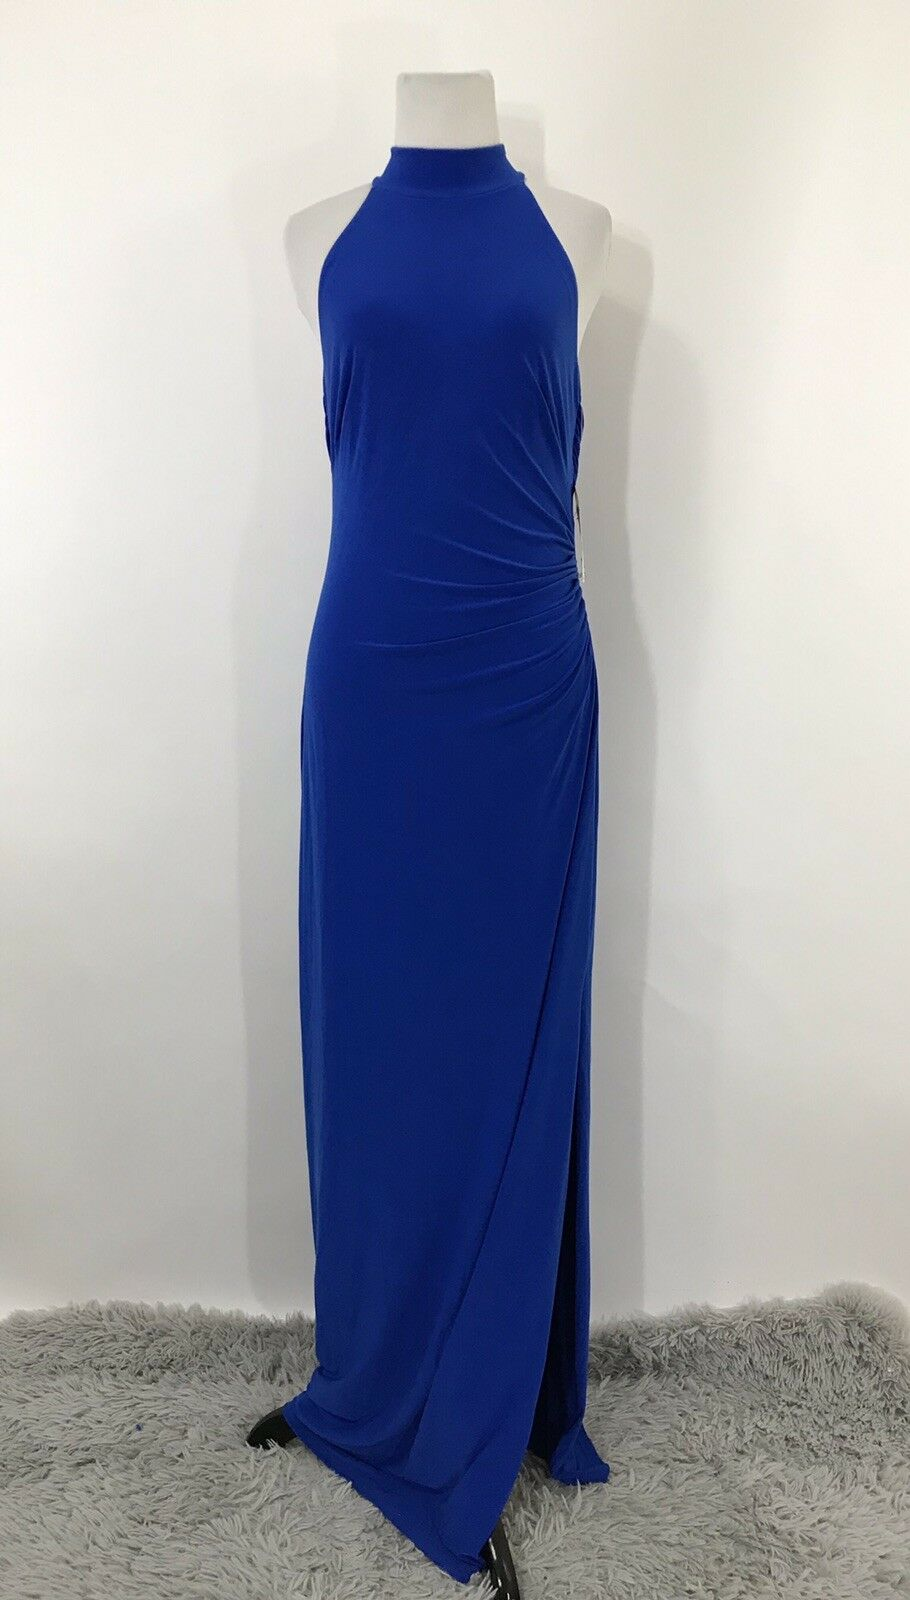 Ralph lauren dress halter Blau maxi draped open back side cinched 6  Stretch